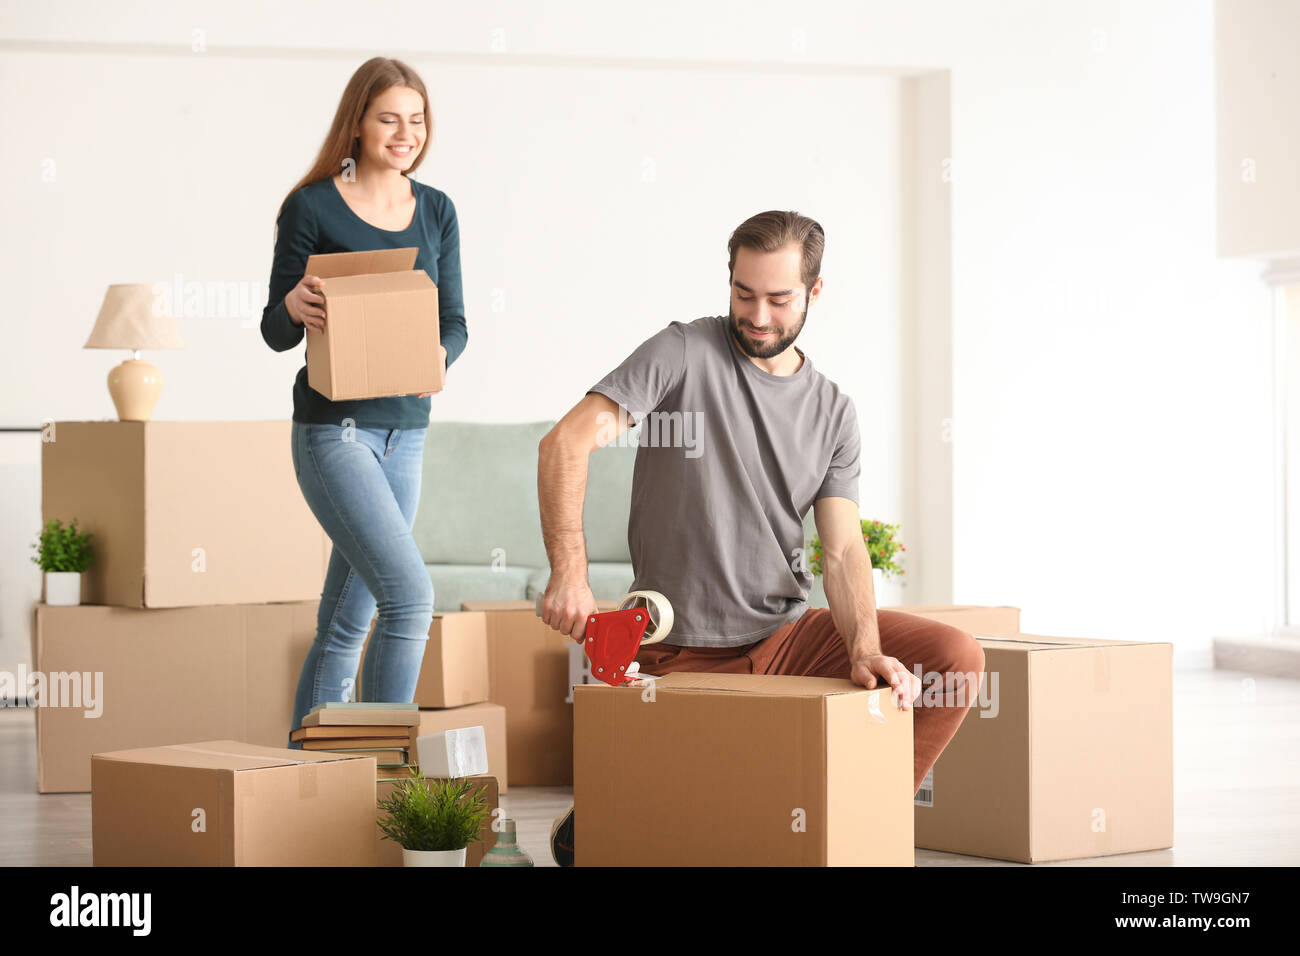 Young couple packing moving boxes, indoors - Stock Image